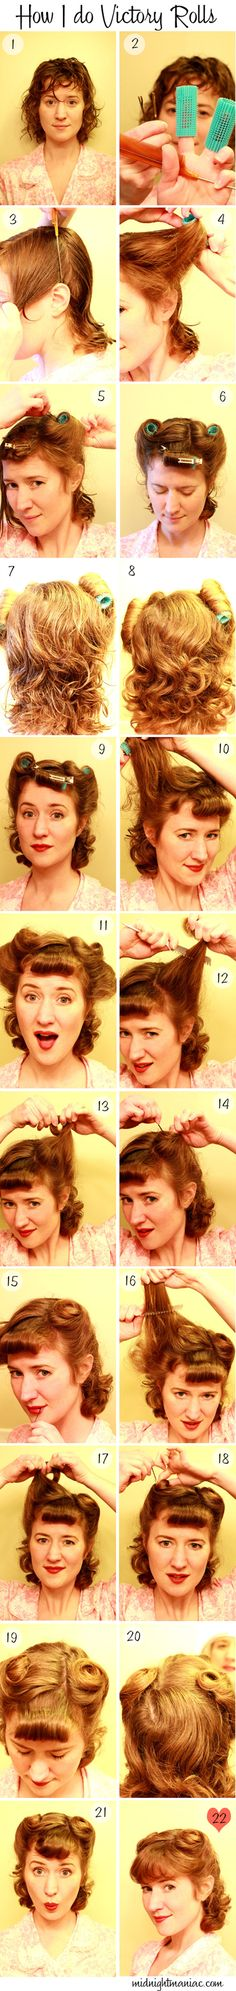 How to do victory rolls.